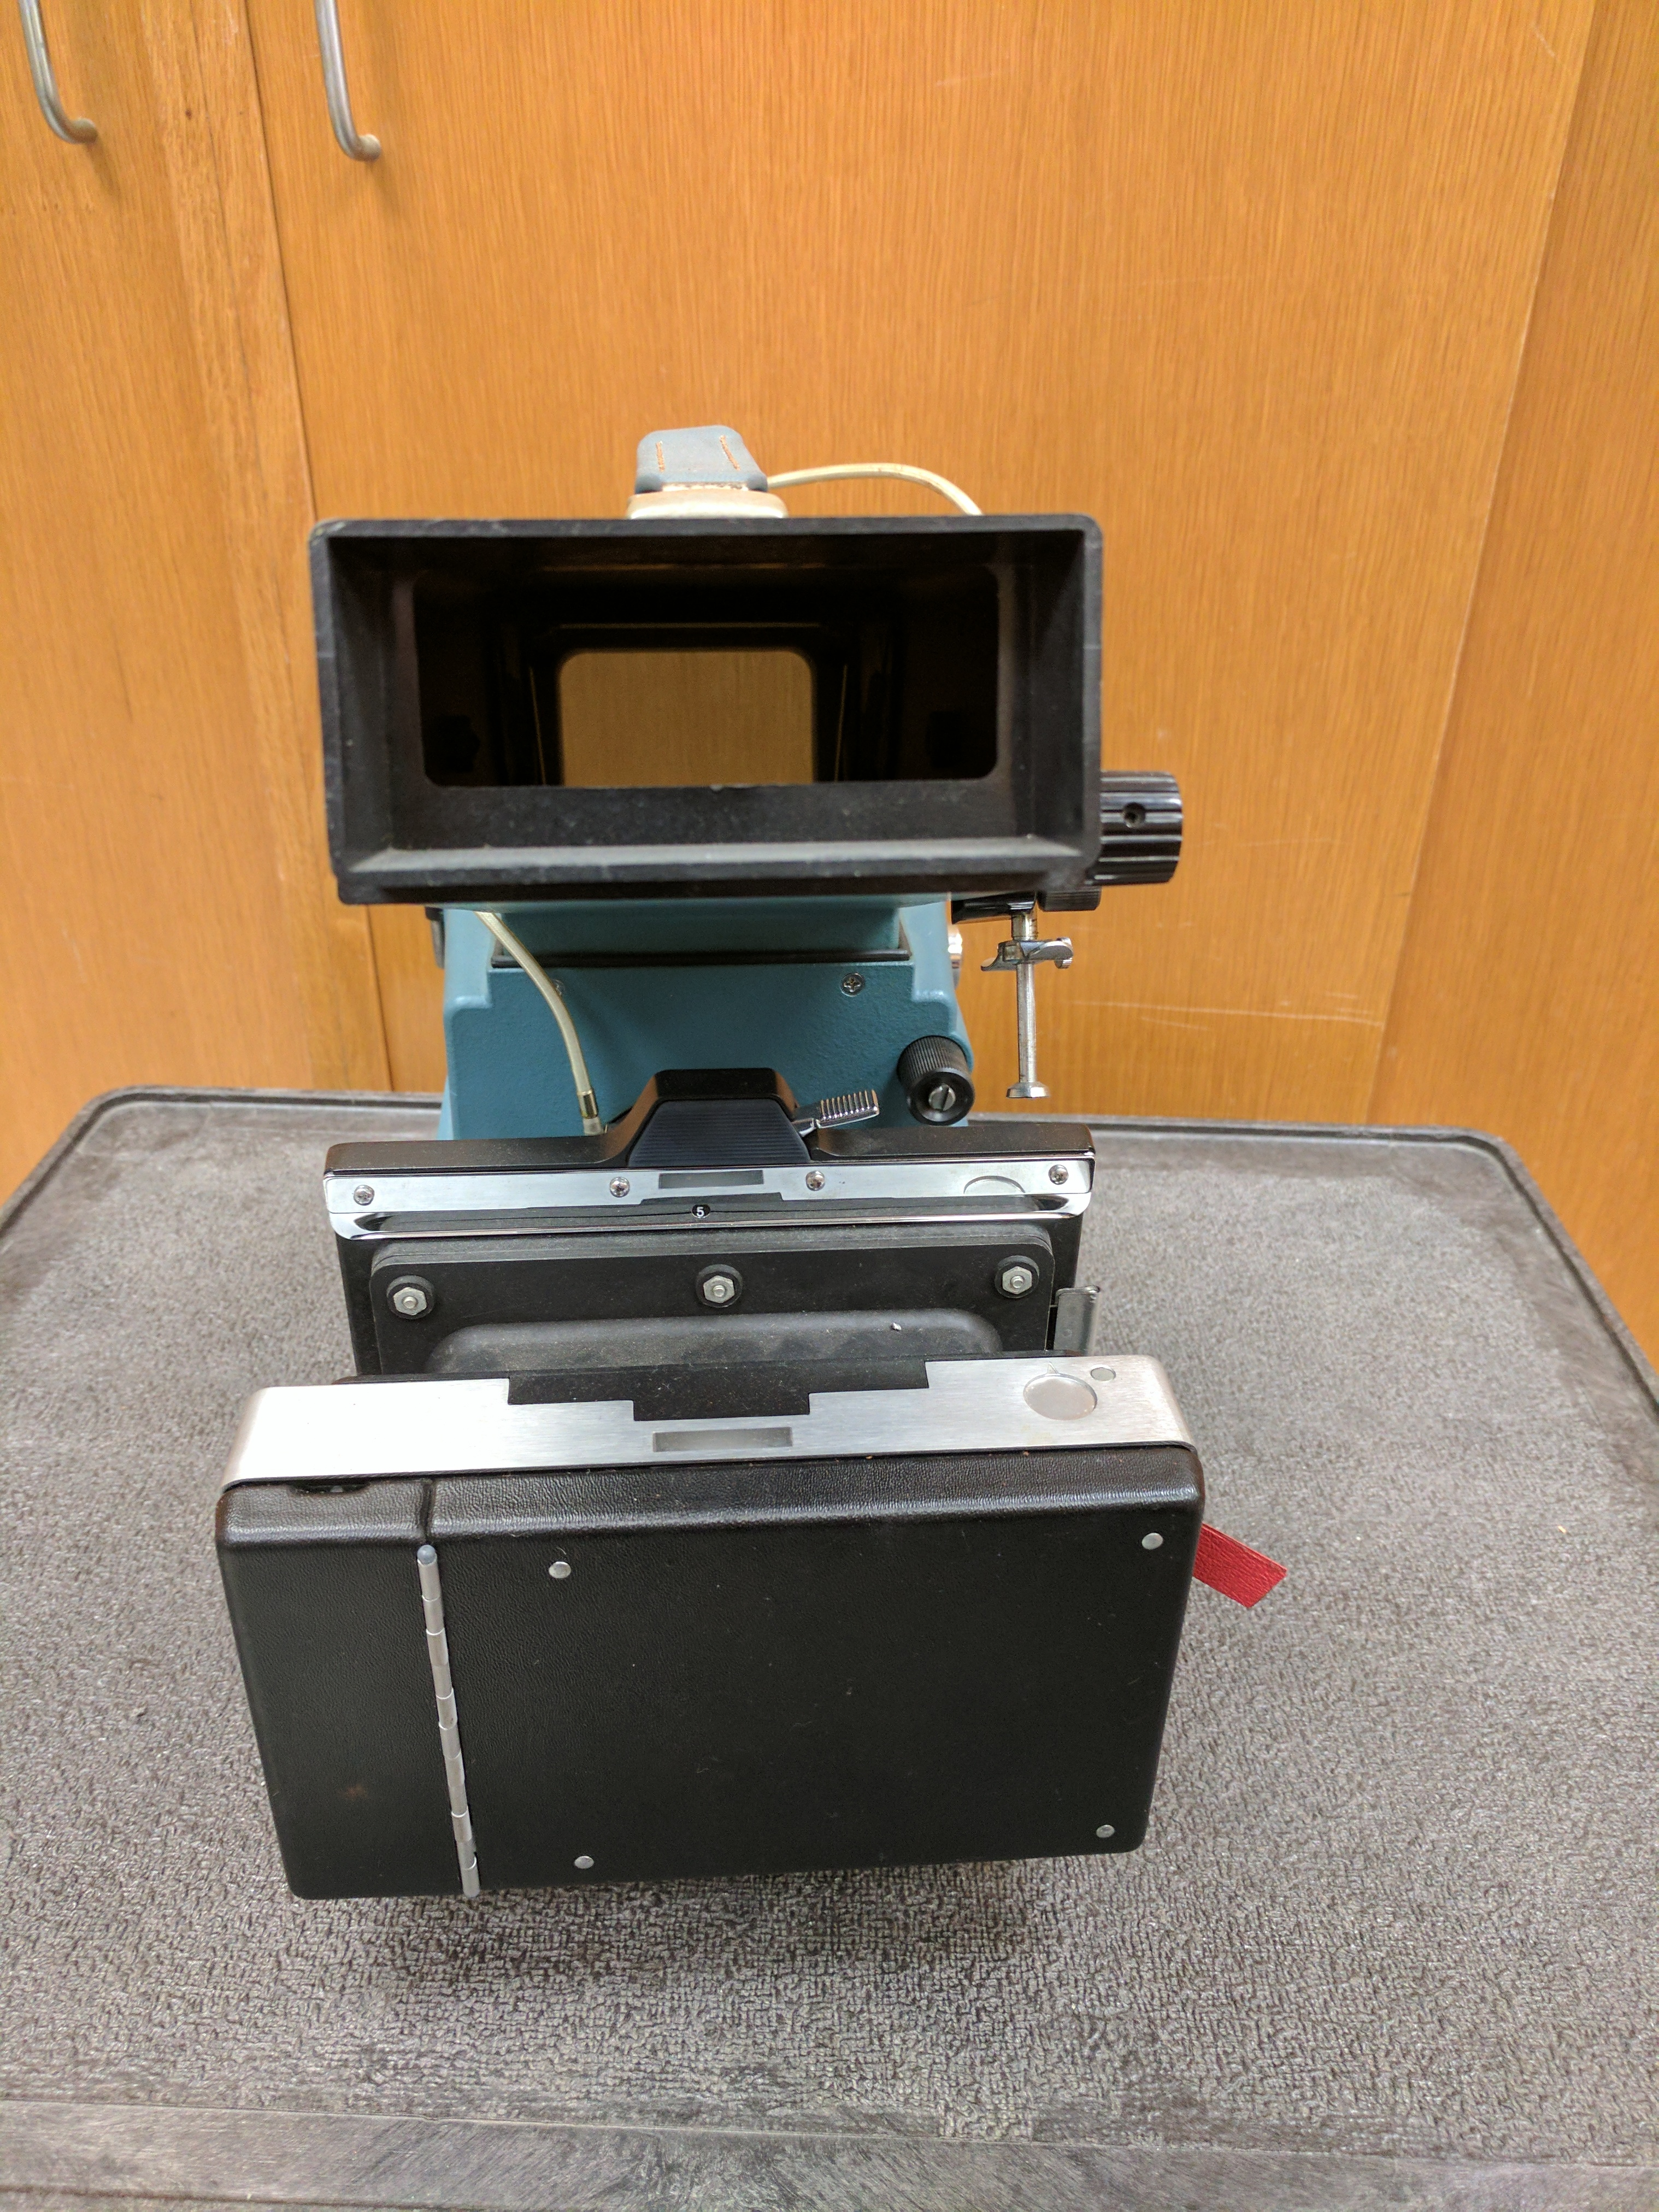 Tektronix C-12 Oscilloscope Camera - Viewer Side